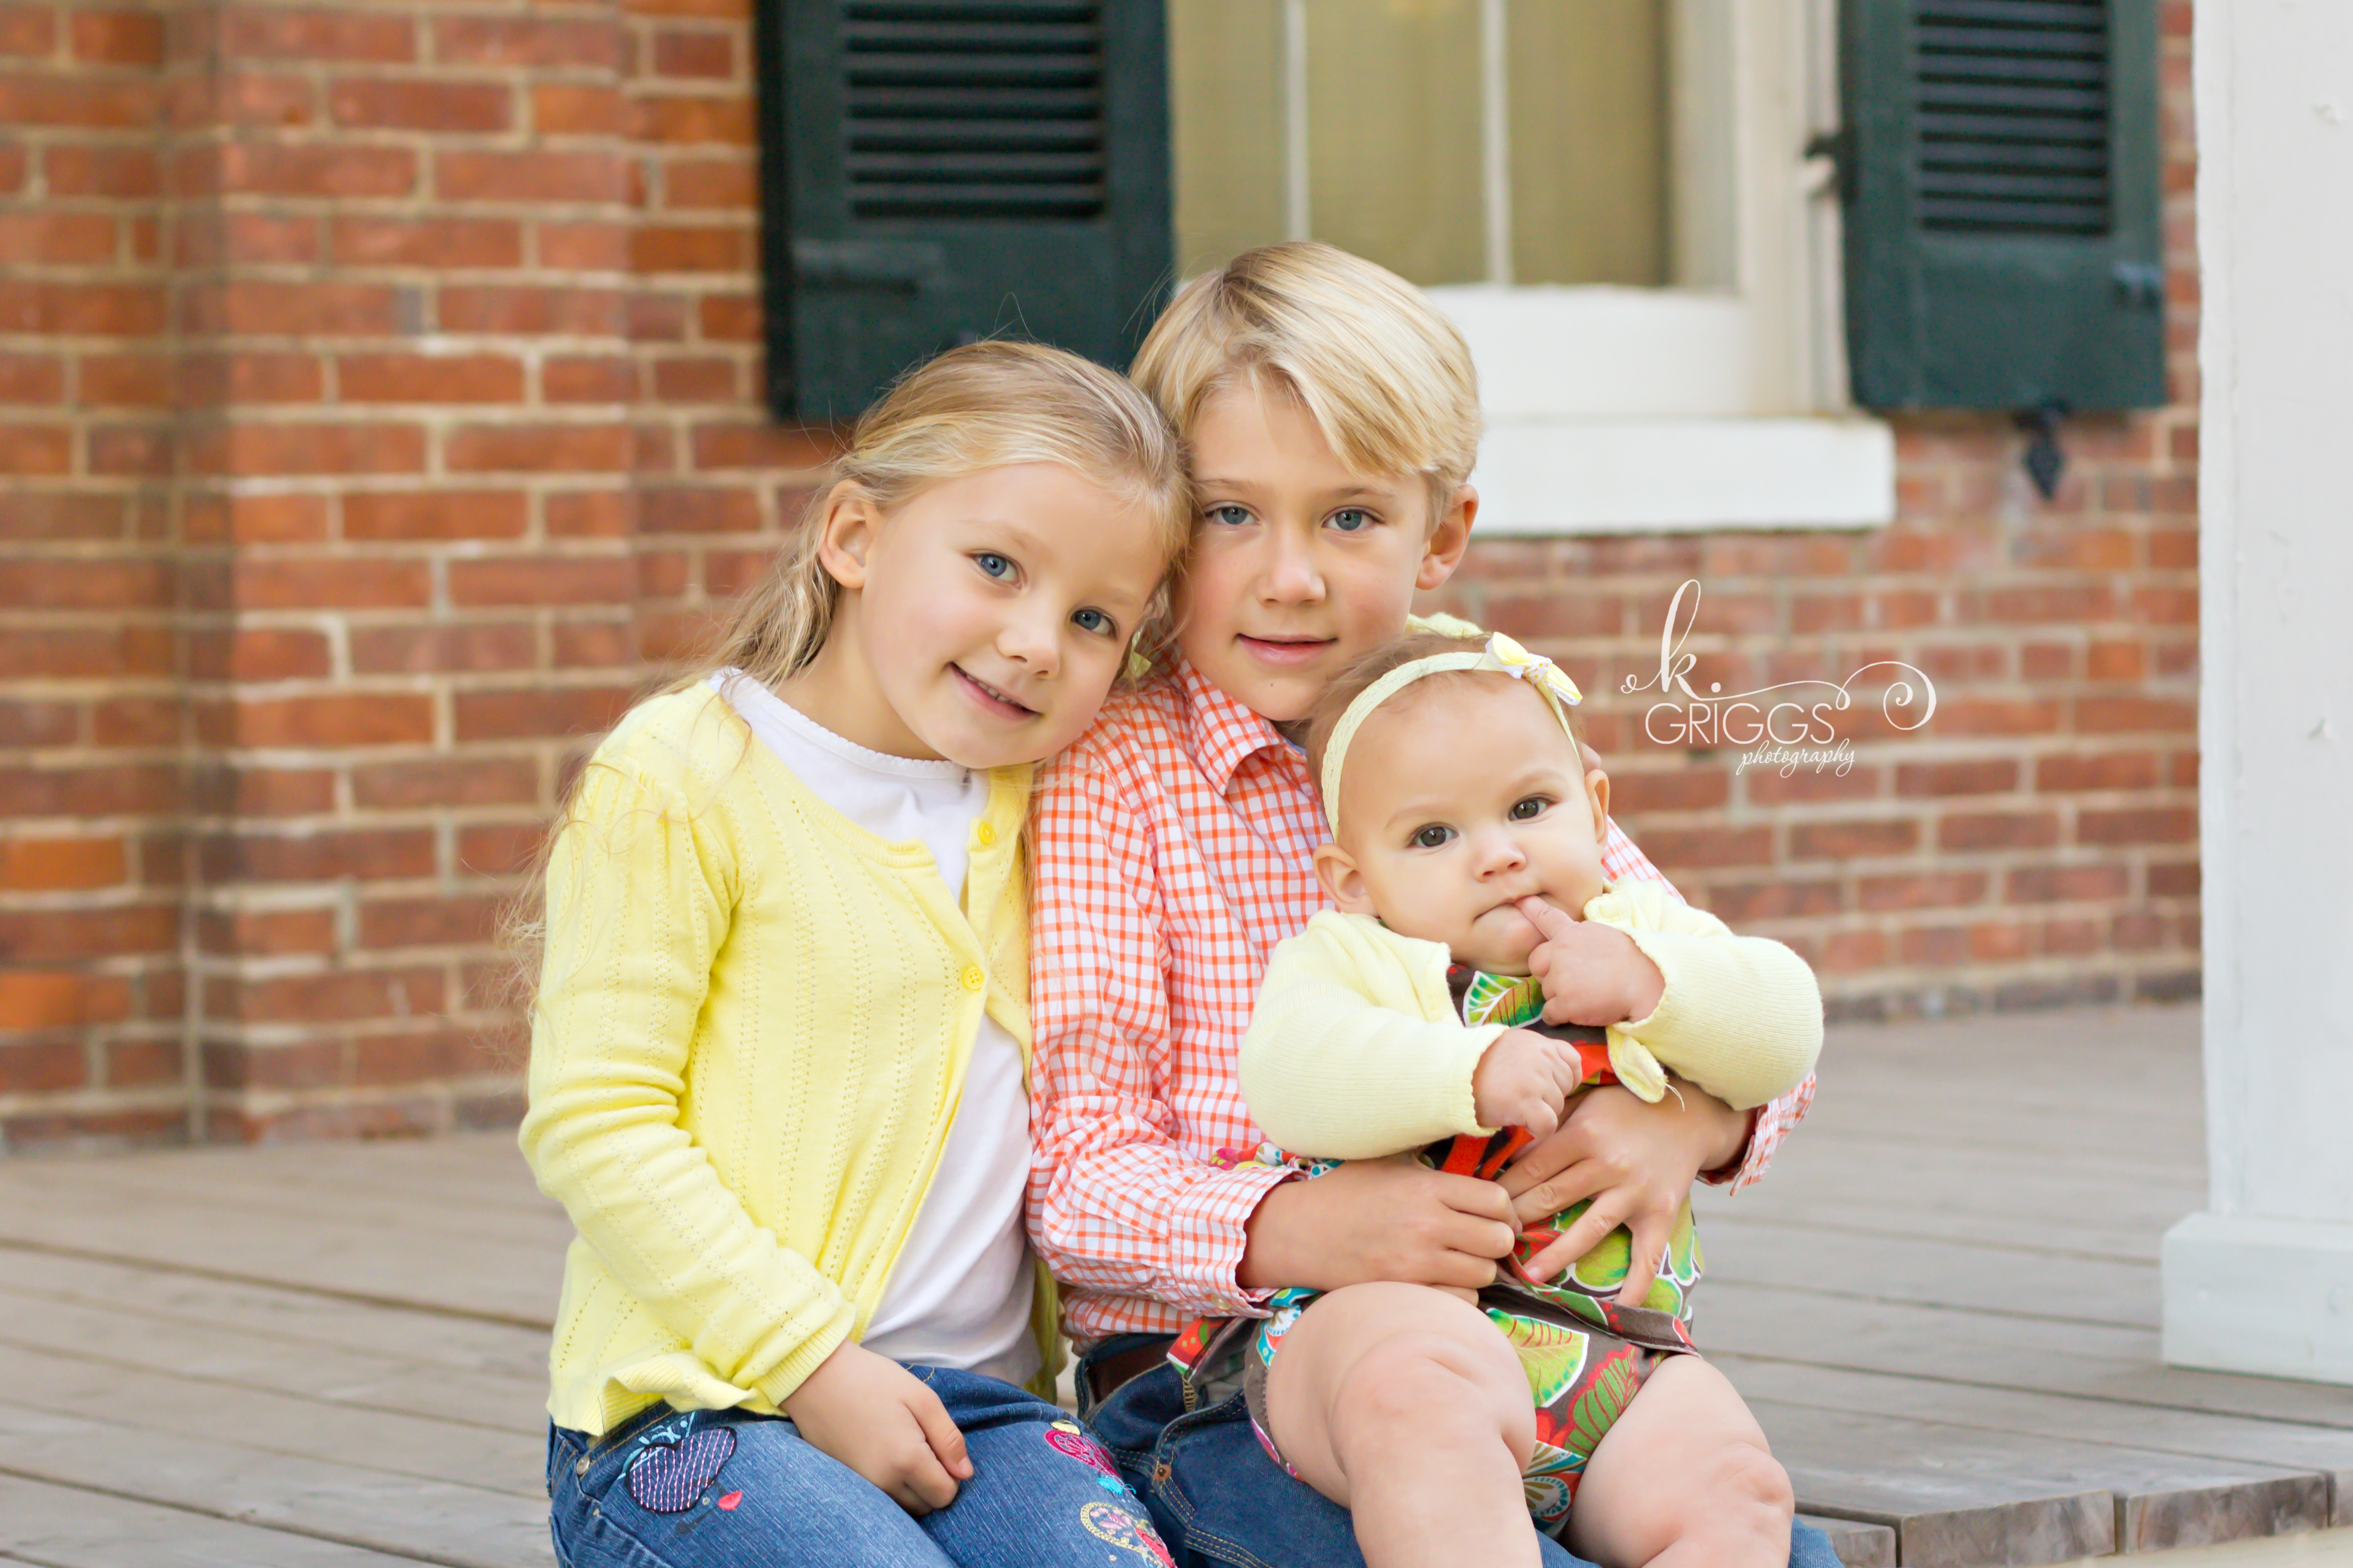 St. Louis Family Photographer - KGriggs Photography - three kiddos sitting on steps - Queeny Park, St. Louis, MO